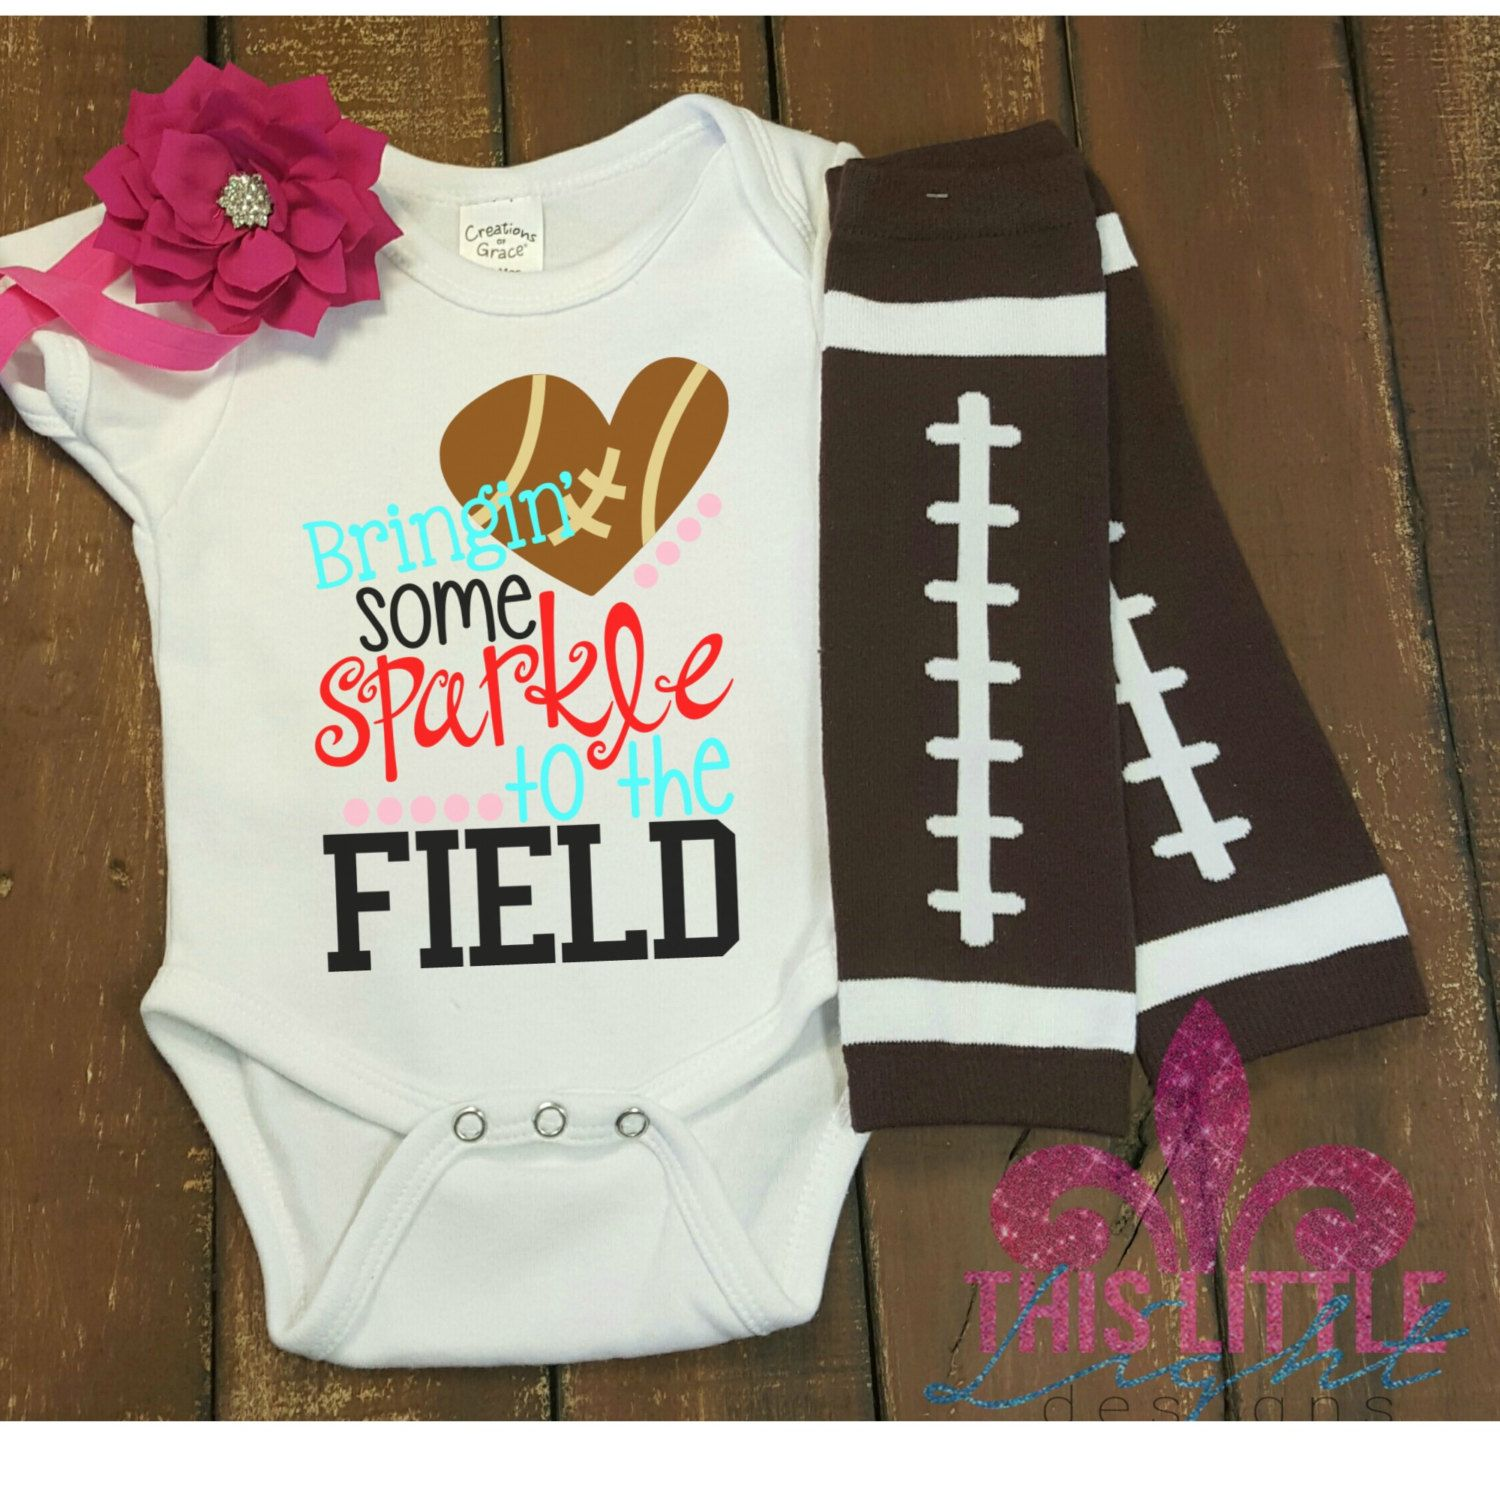 Baby Girl Outfit Football Game Shirt Bringing Some Sparkle To The Field Toddler Shirt Little Sister S Mom And Me Shirts Cute Outfits For Kids Toddler Shirt